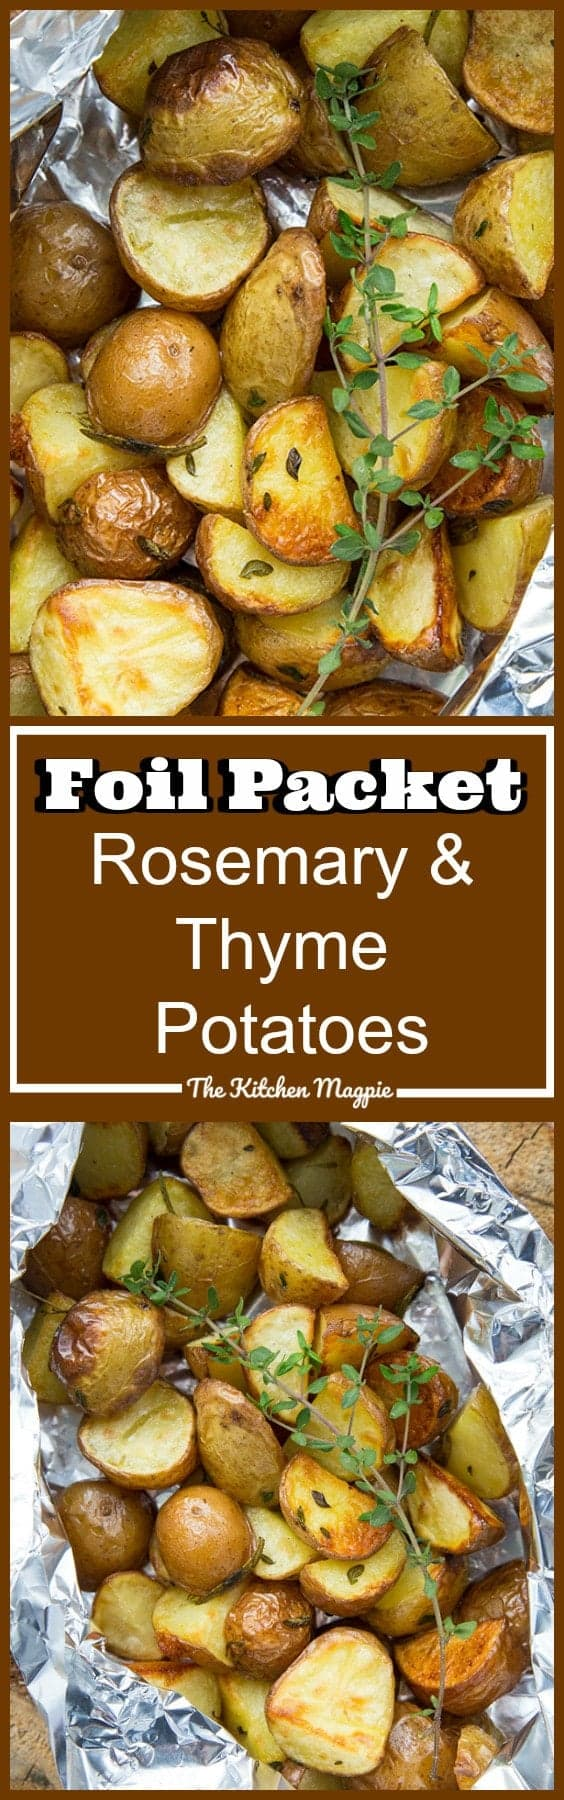 These Rosemary & Thyme Potatoes in Foil Packets were an accidental recipe that happened when we were at the lake! I had extra potatoes leftover from my Shrimp & Potatoes in Foil and knew my son wouldn't touch anything with shrimp in it. I threw these together and voila! A delicious new camping recipe was born!